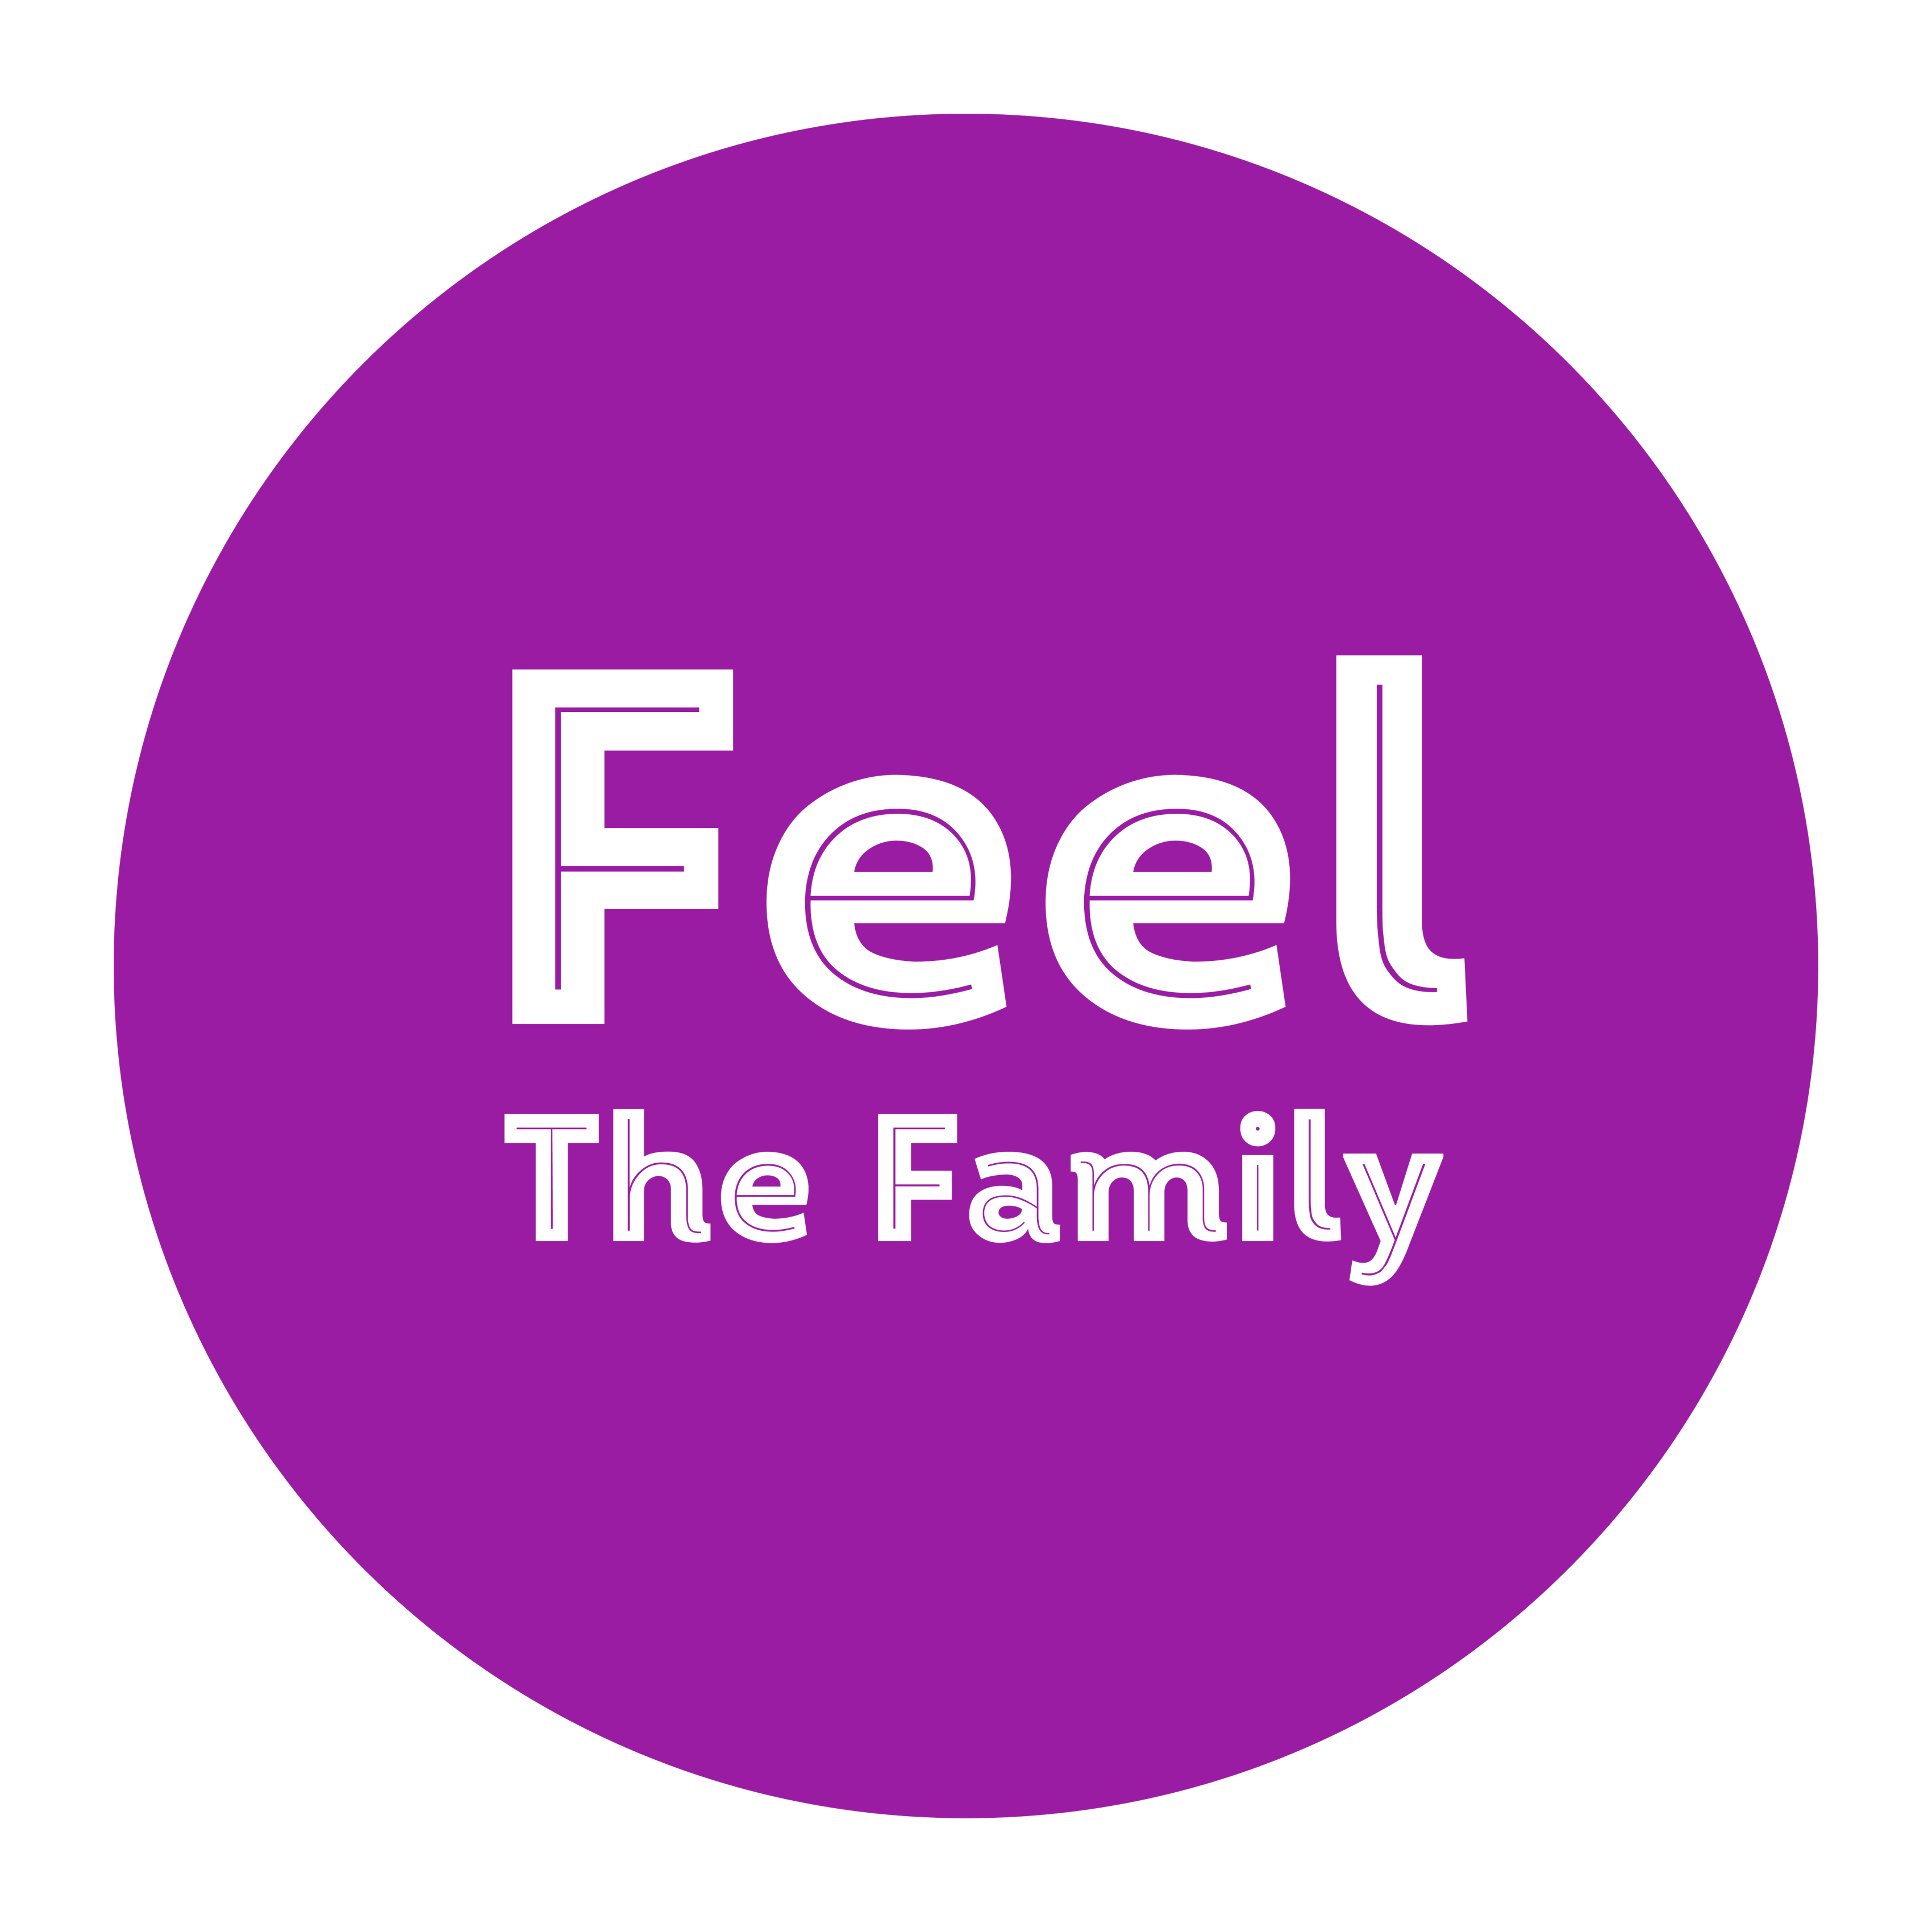 Feel The Family